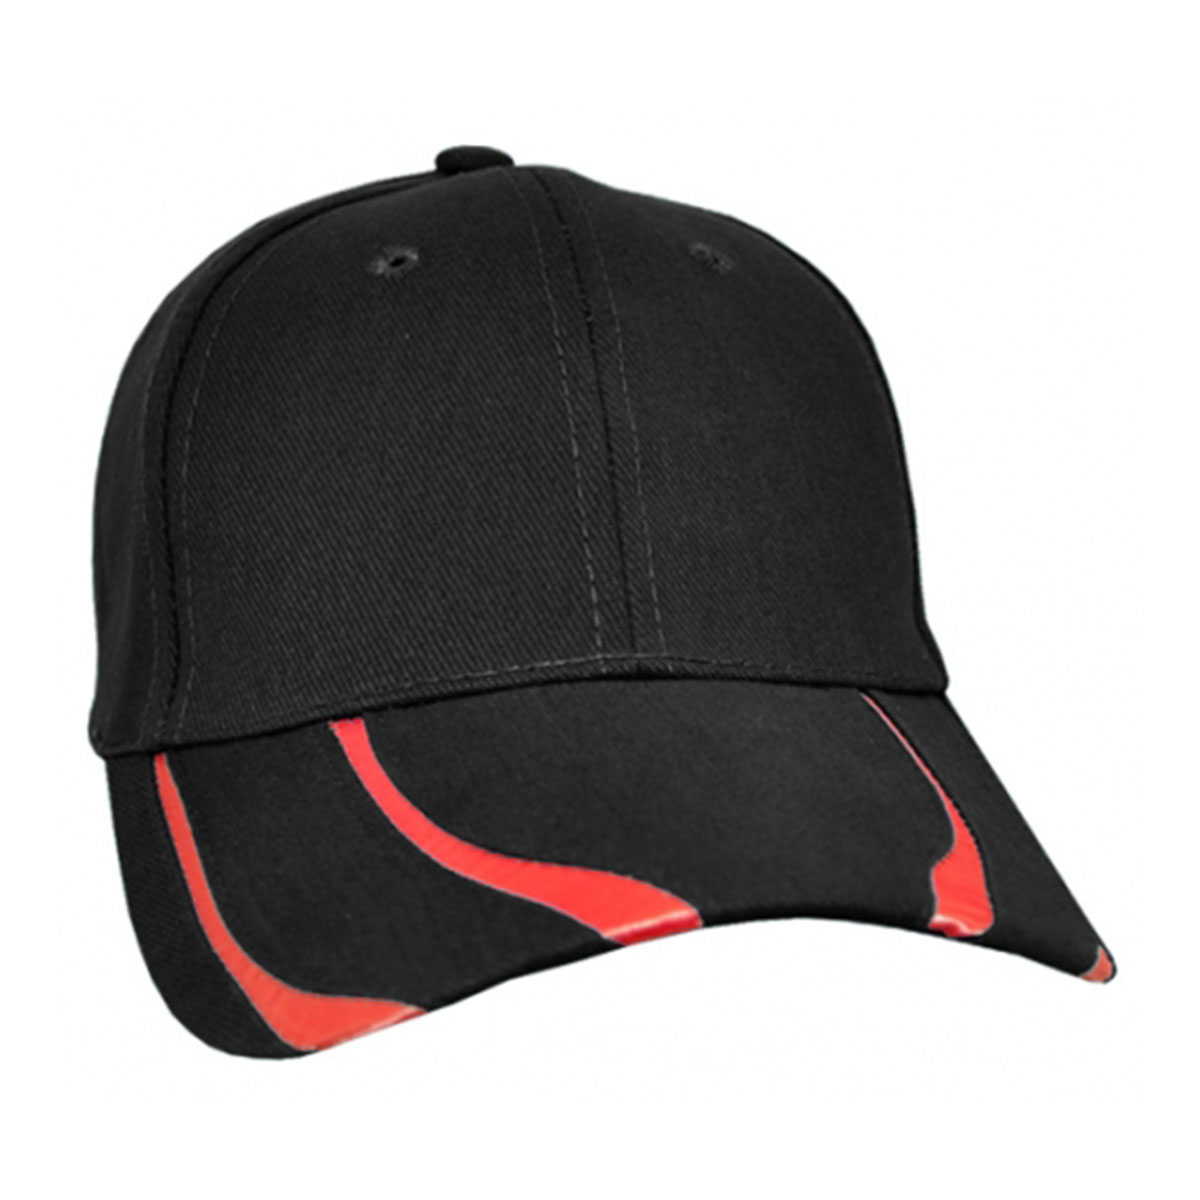 Striker Cap-Black / Red